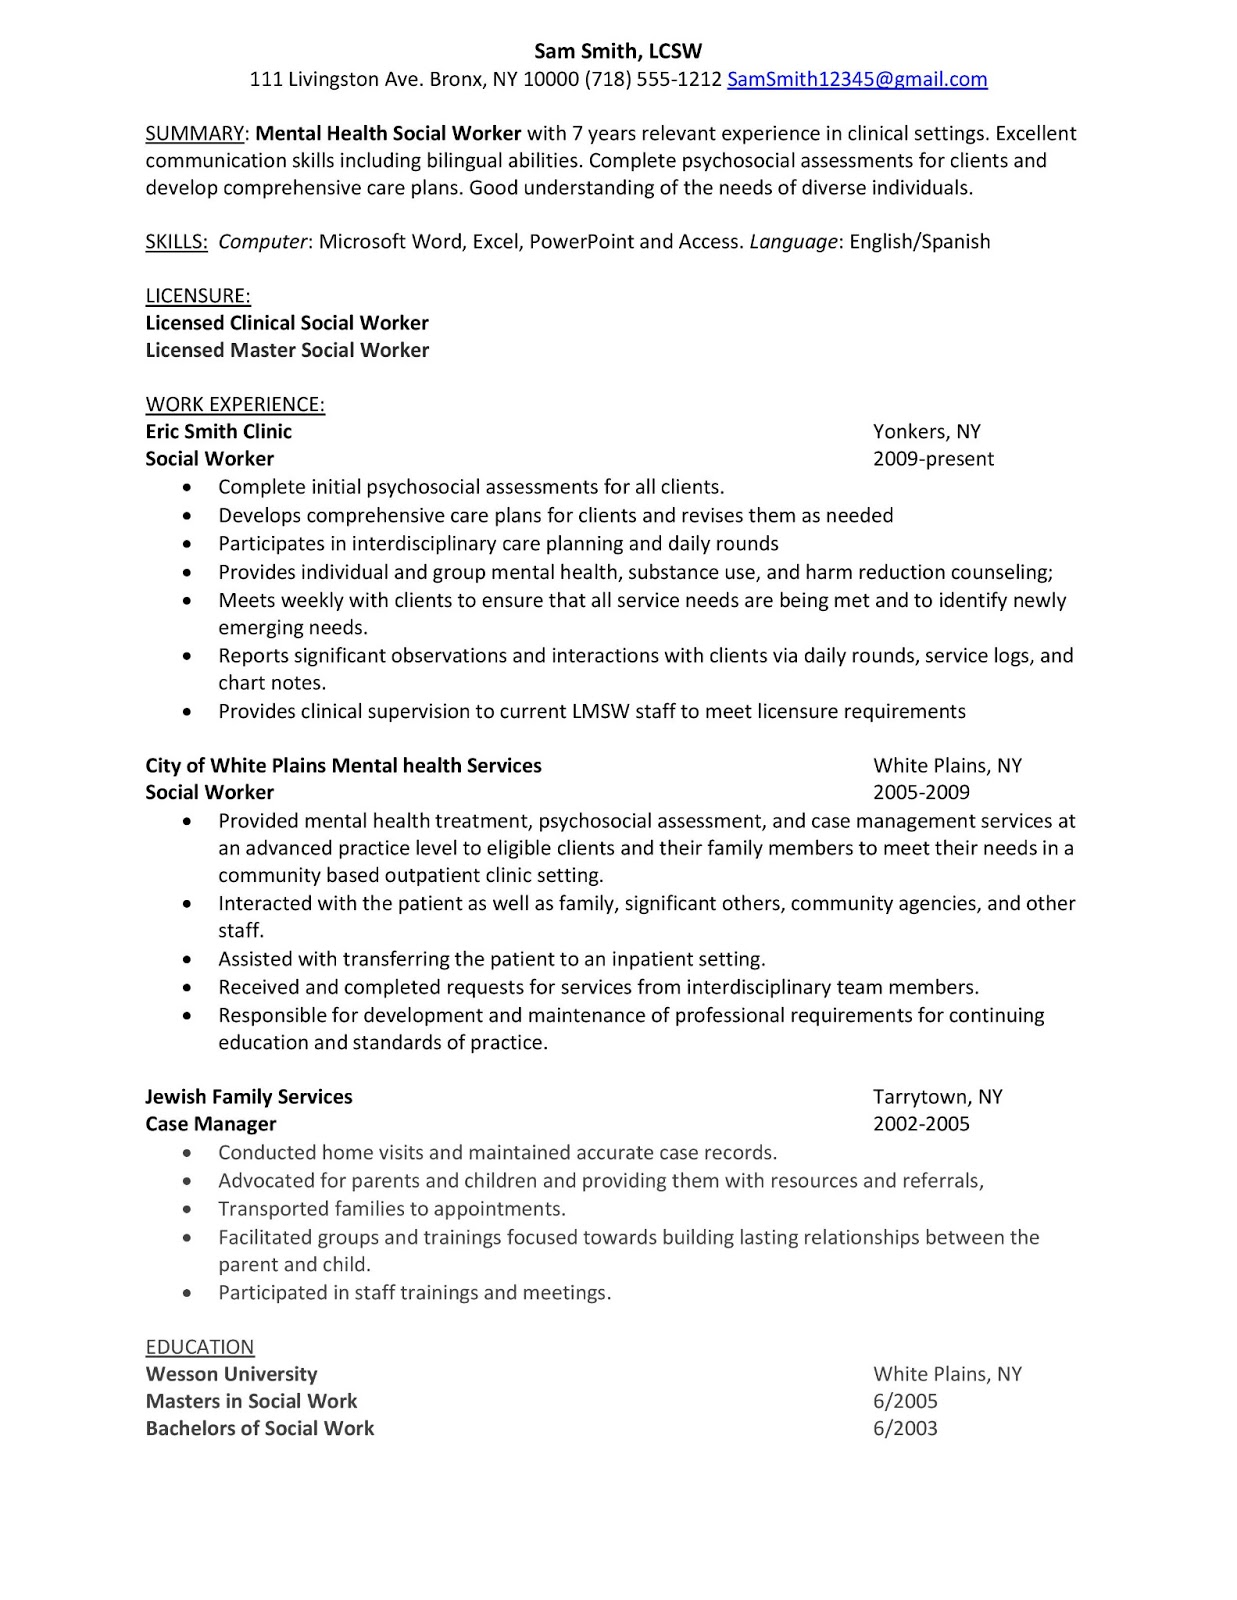 clinical social work resumes - Clinical Officer Sample Resume